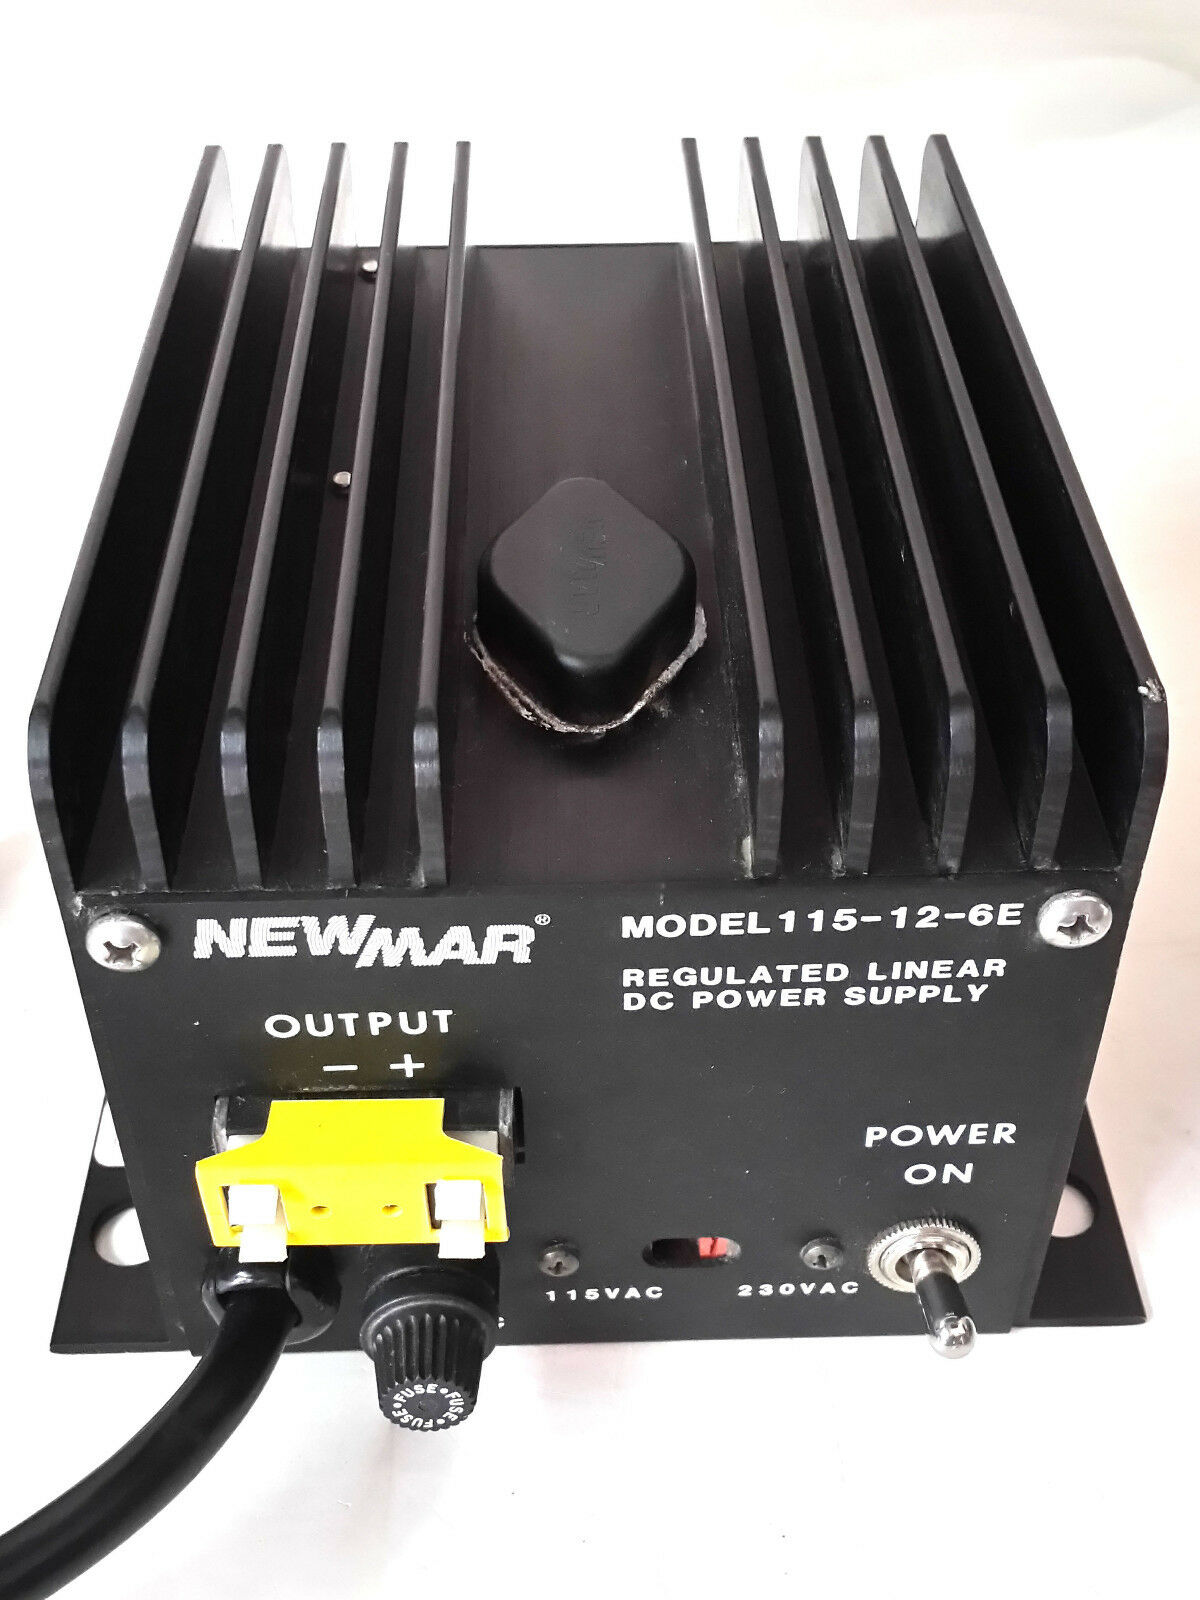 Newmar Fuse Box 115 12 6e Power Supplies Heavy Duty 115v Or 230v Ac To 12v Dc Norton Secured Powered By Verisign